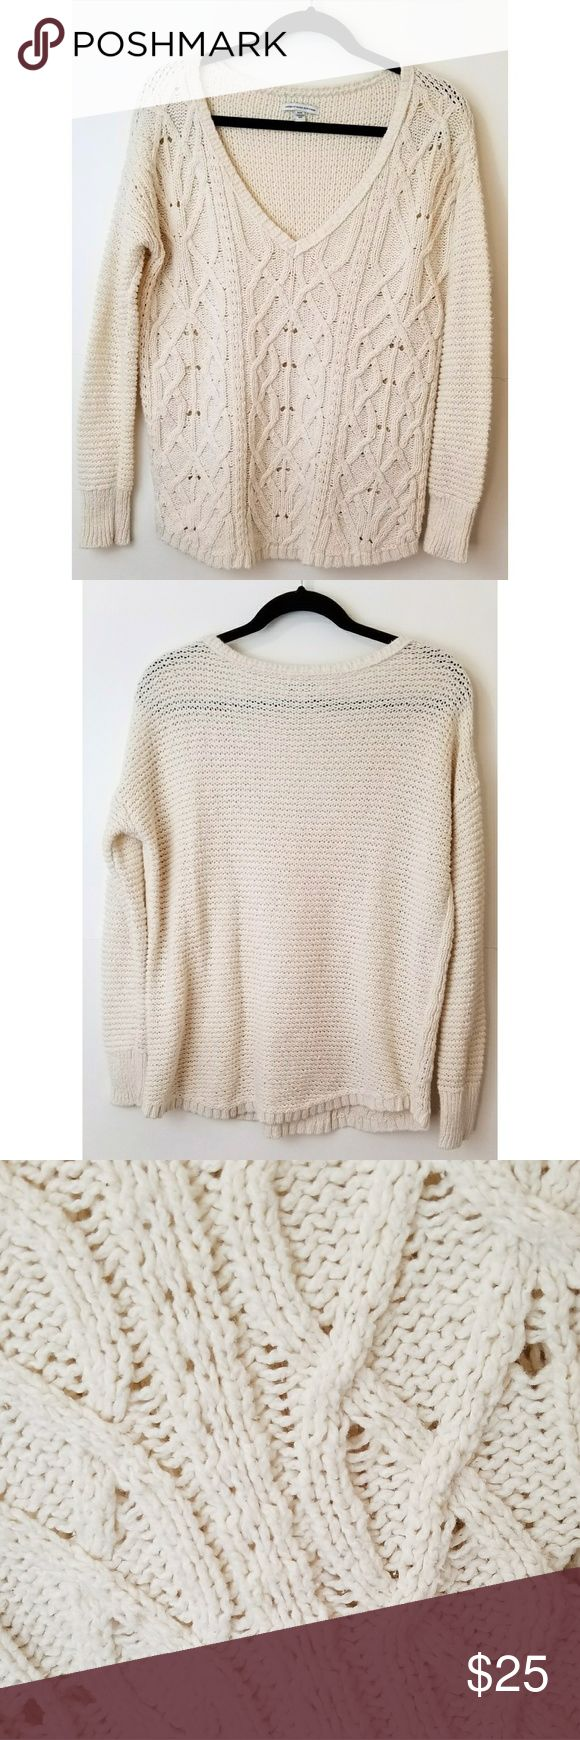 "American Eagle Cable Knit Sweater Ameican Eagle Outfitters, off-white color, chunky cable knit, v-neck sweater, great condition, size medium.  Measurements laying flat- 22"" bust 25"" long American Eagle Outfitters Sweaters V-Necks"